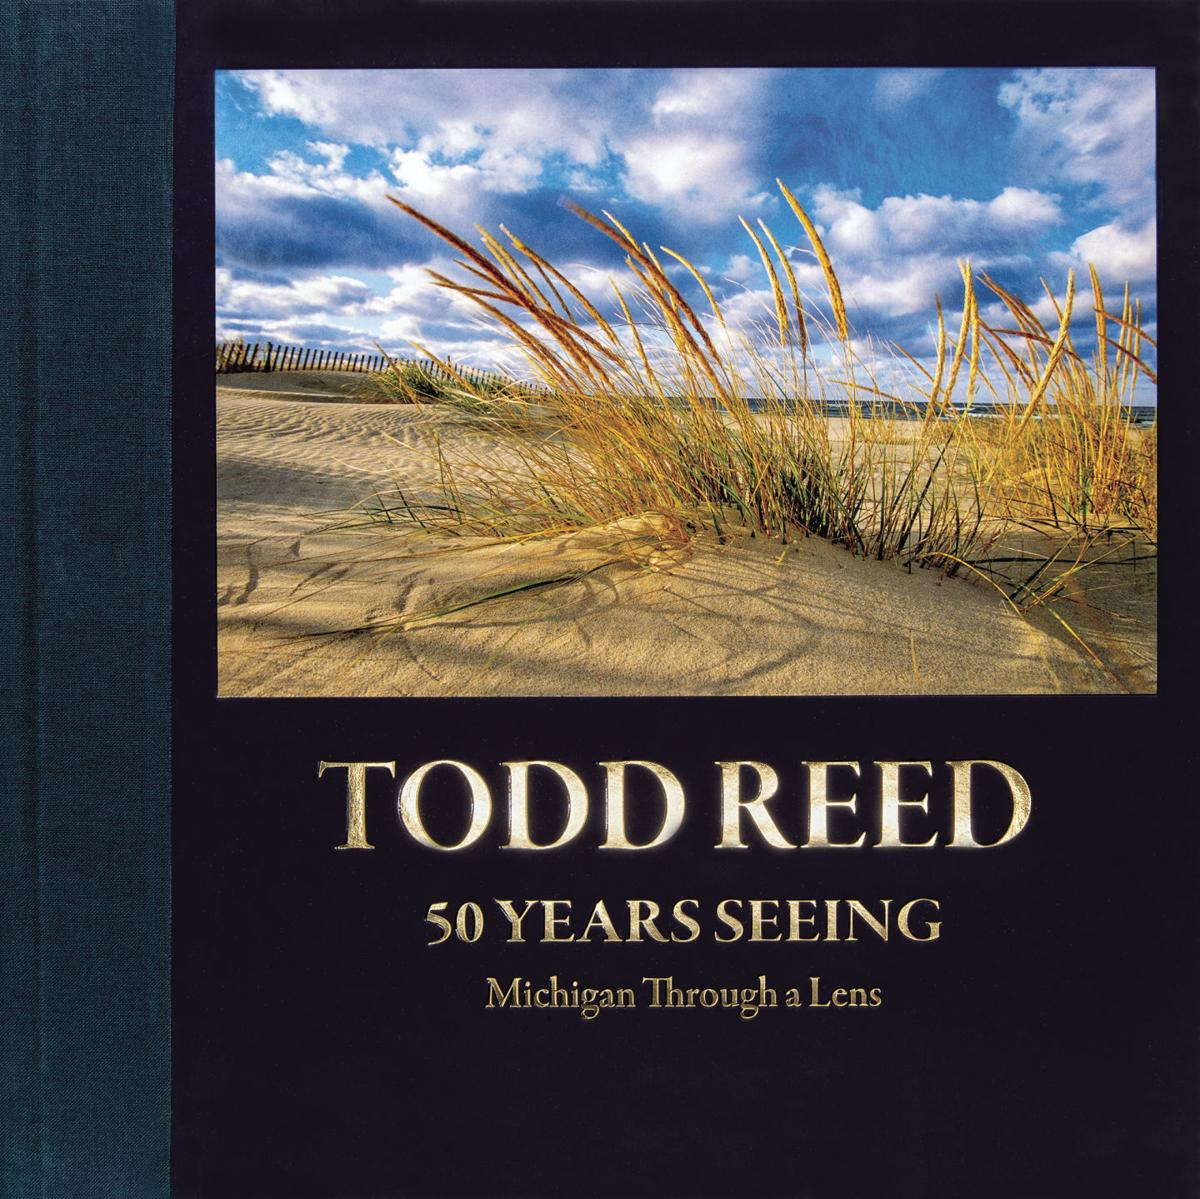 Todd Reed's '50 Years Seeing Michigan Through a Lens'